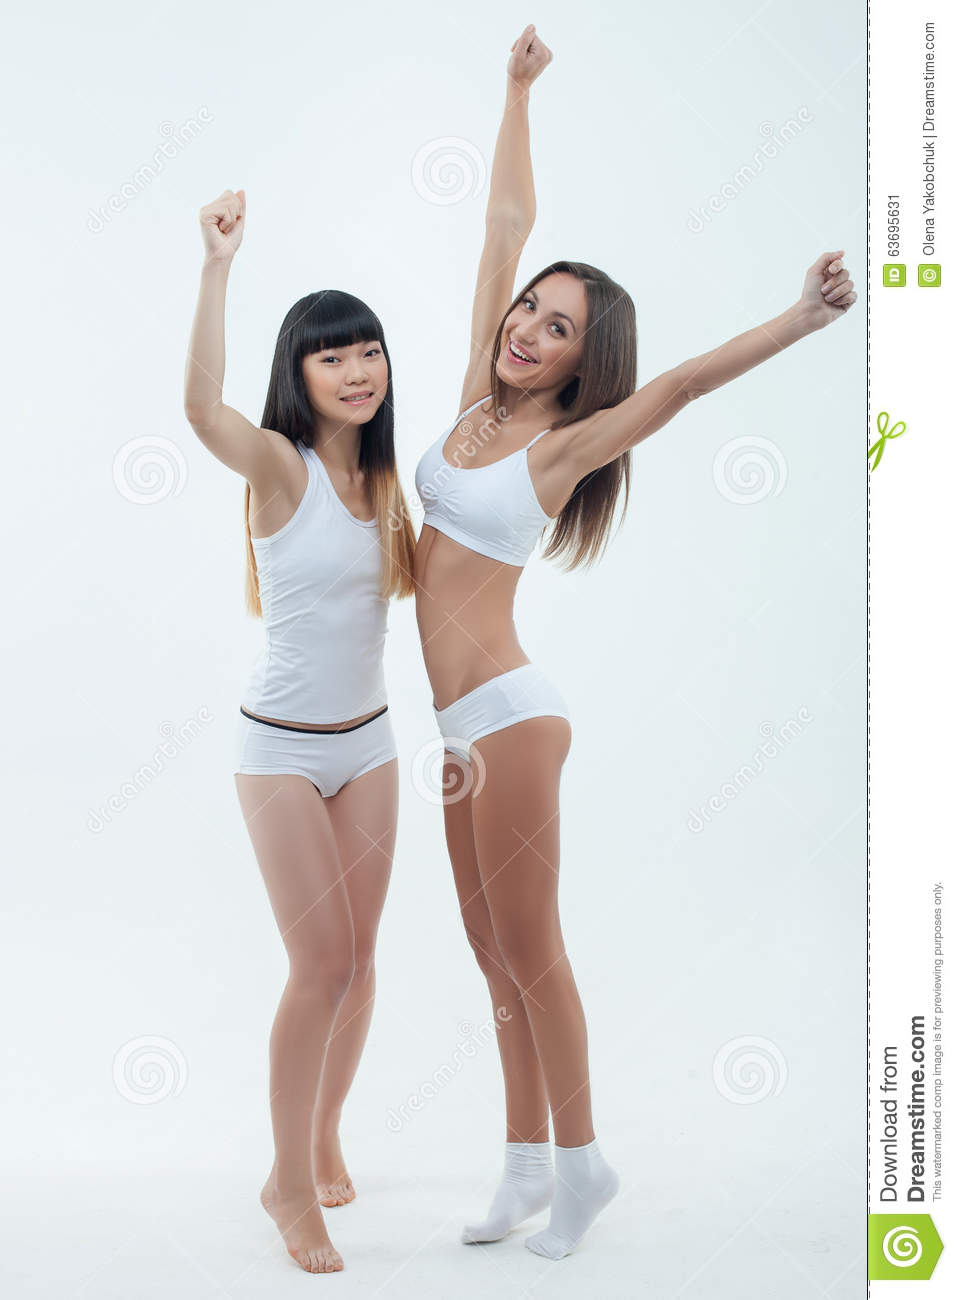 Cheerful Fit Girls Are Expressing Positive Stock Photo - Image ...